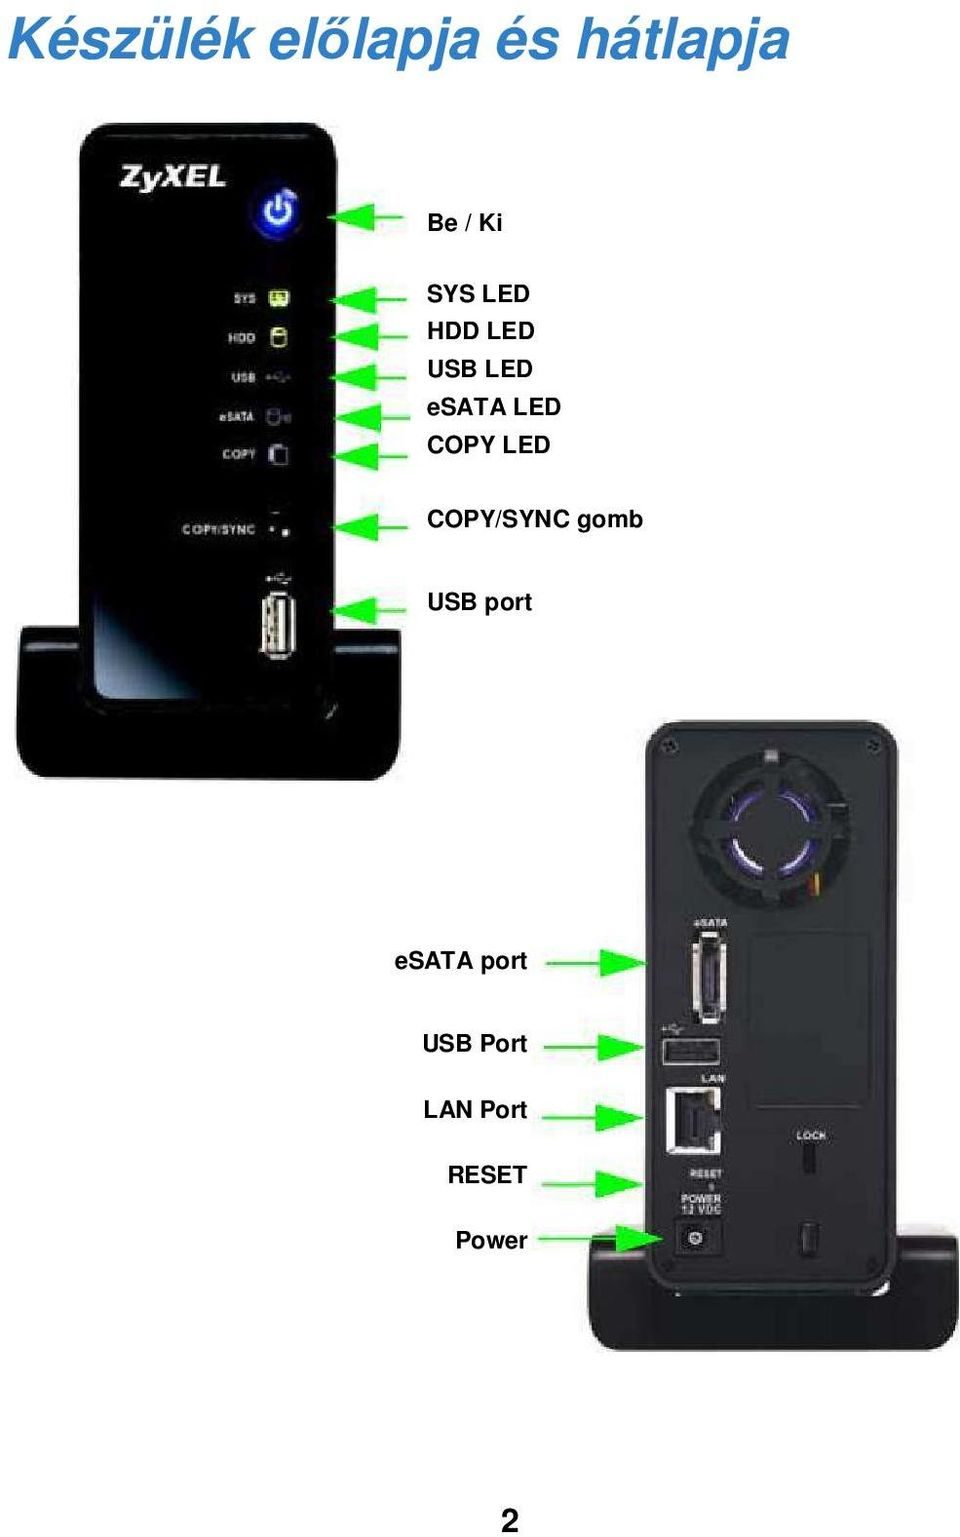 COPY LED COPY/SYNC gomb USB port